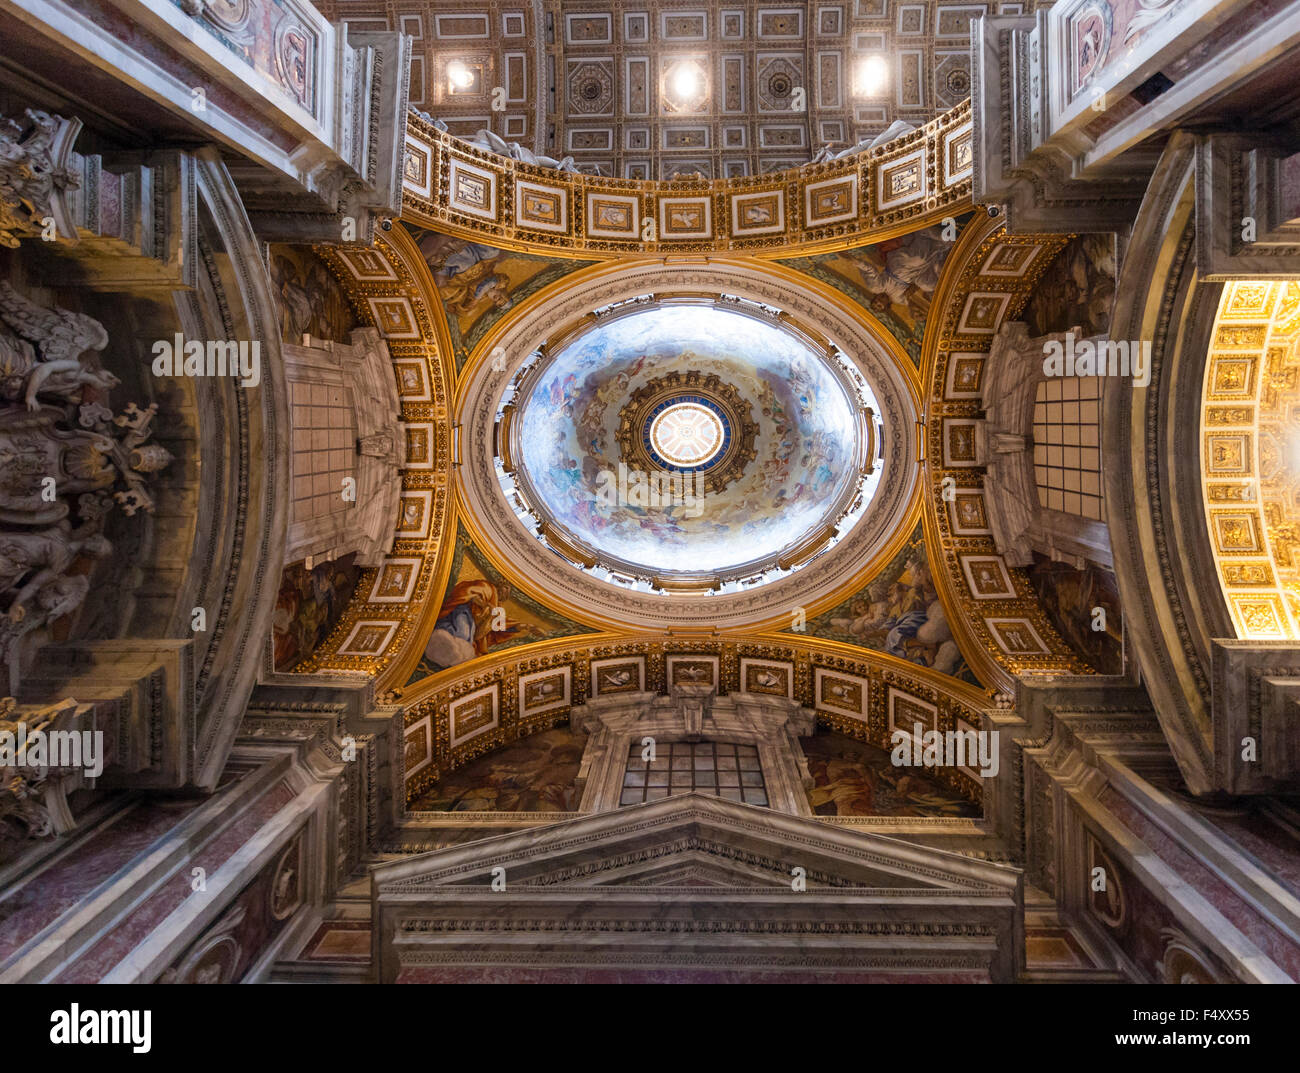 Interior of St. Peter's Basilica, Vatican: main dome above the chancel, seen from below - Stock Image